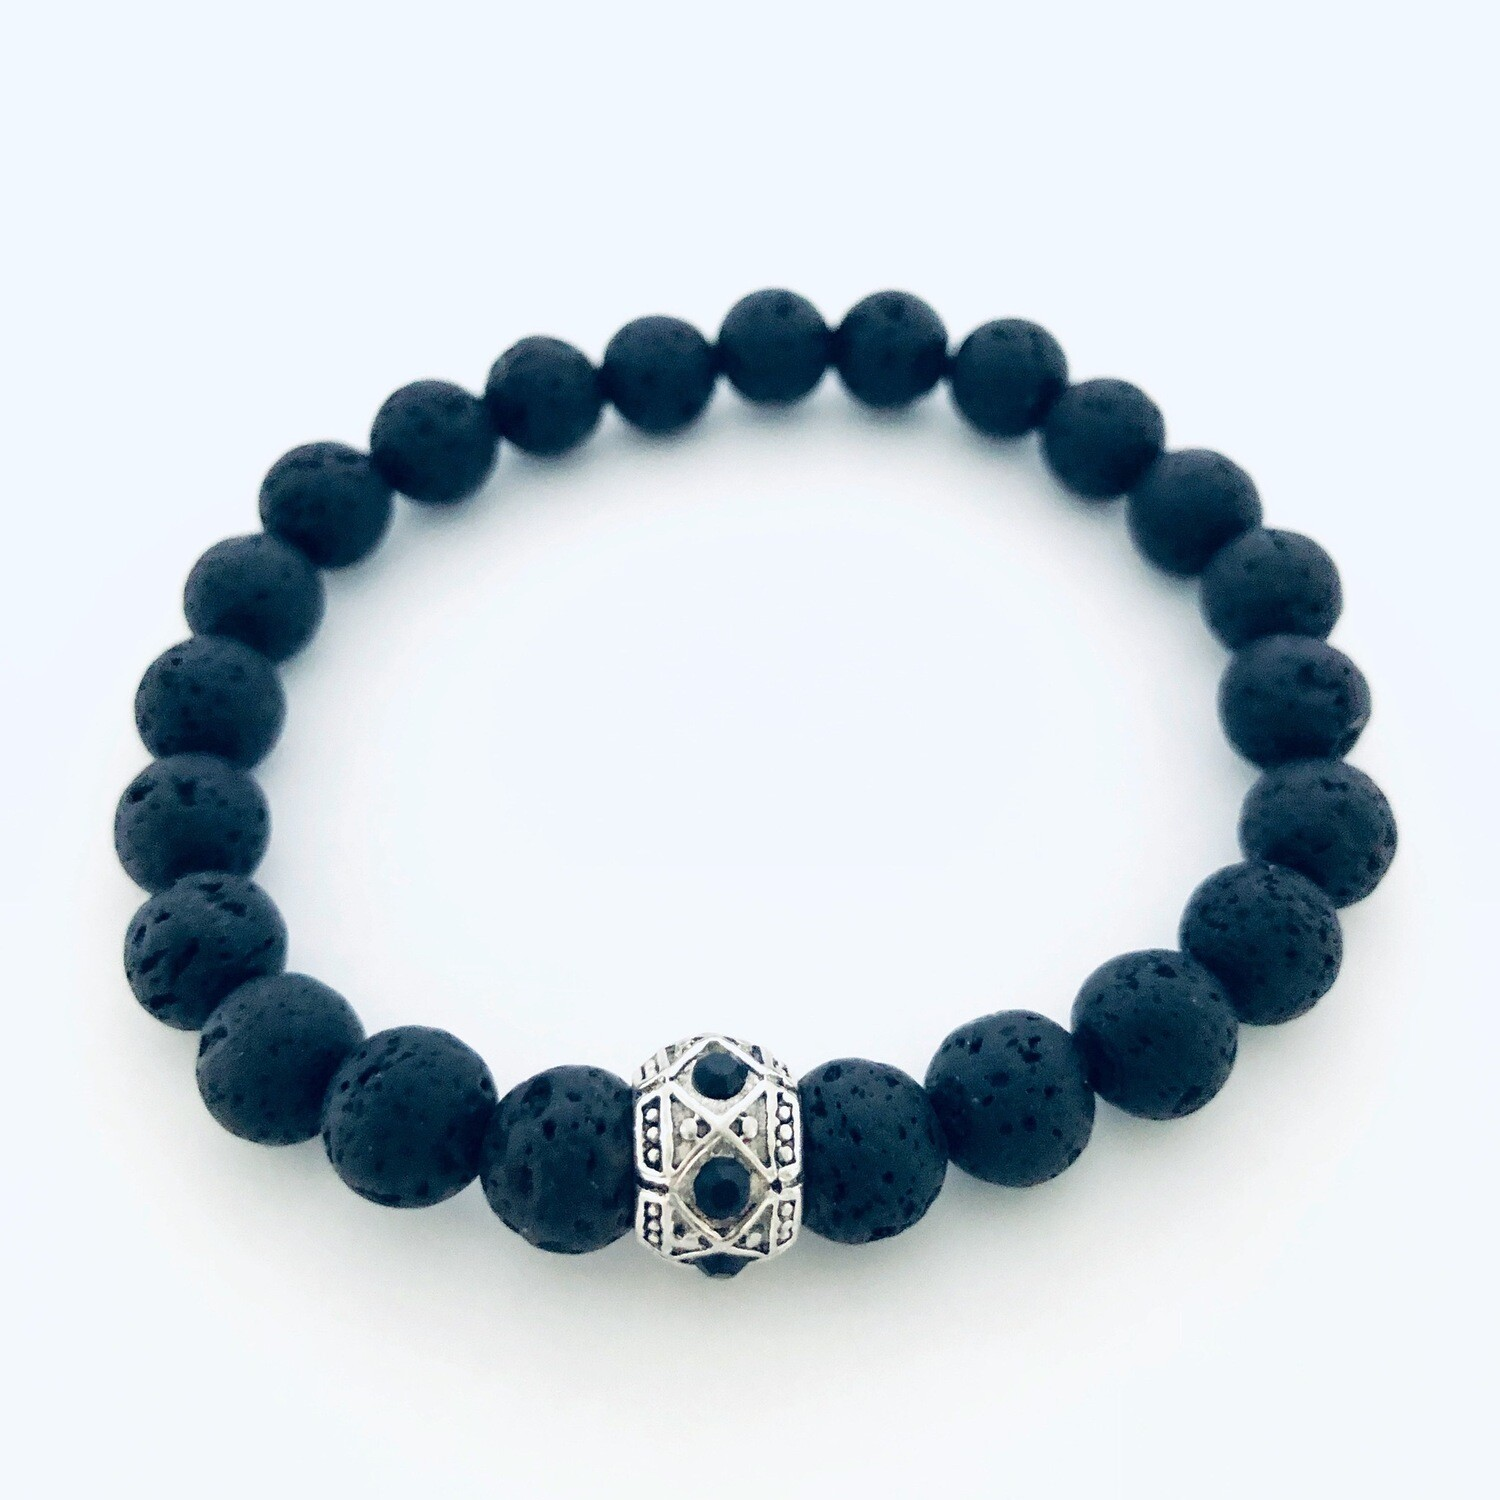 'Magma' Aspire Wellness Collection  Lava Stone Diffuser Bracelet.